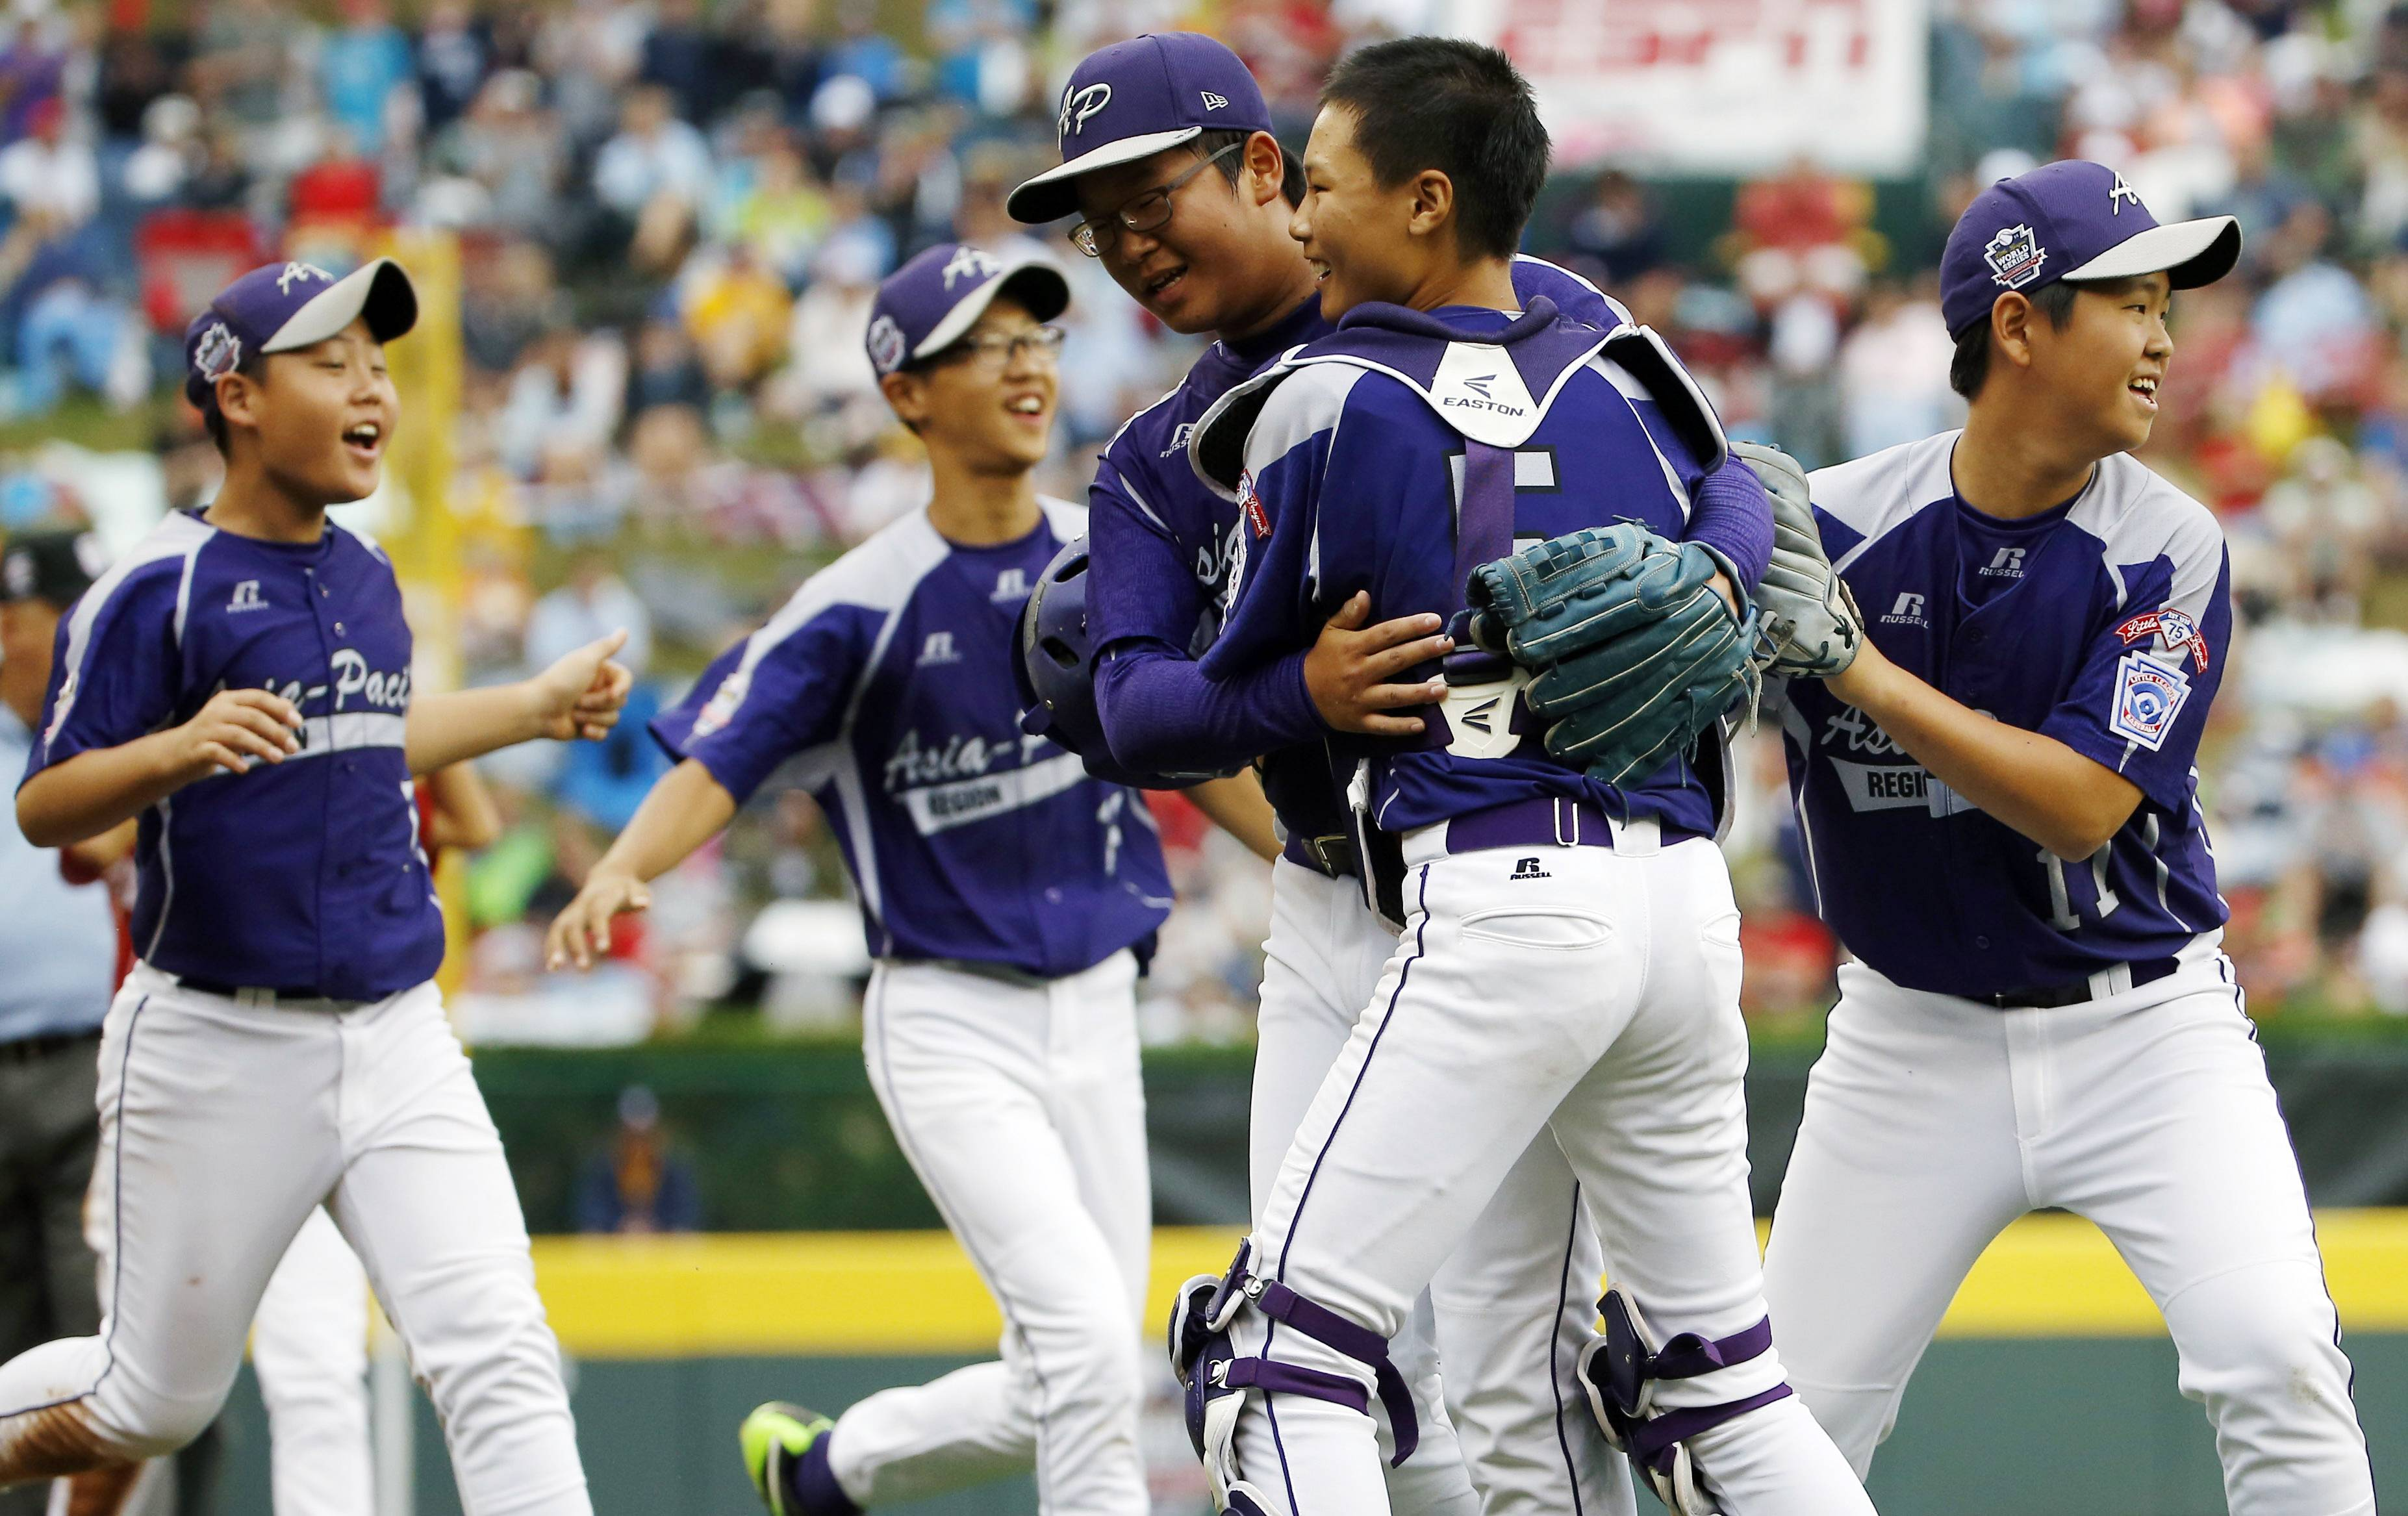 South Korea players celebrate after defeating Japan 12-3 on Saturday in the International final at the Little League World Series in South Williamsport, Pa.